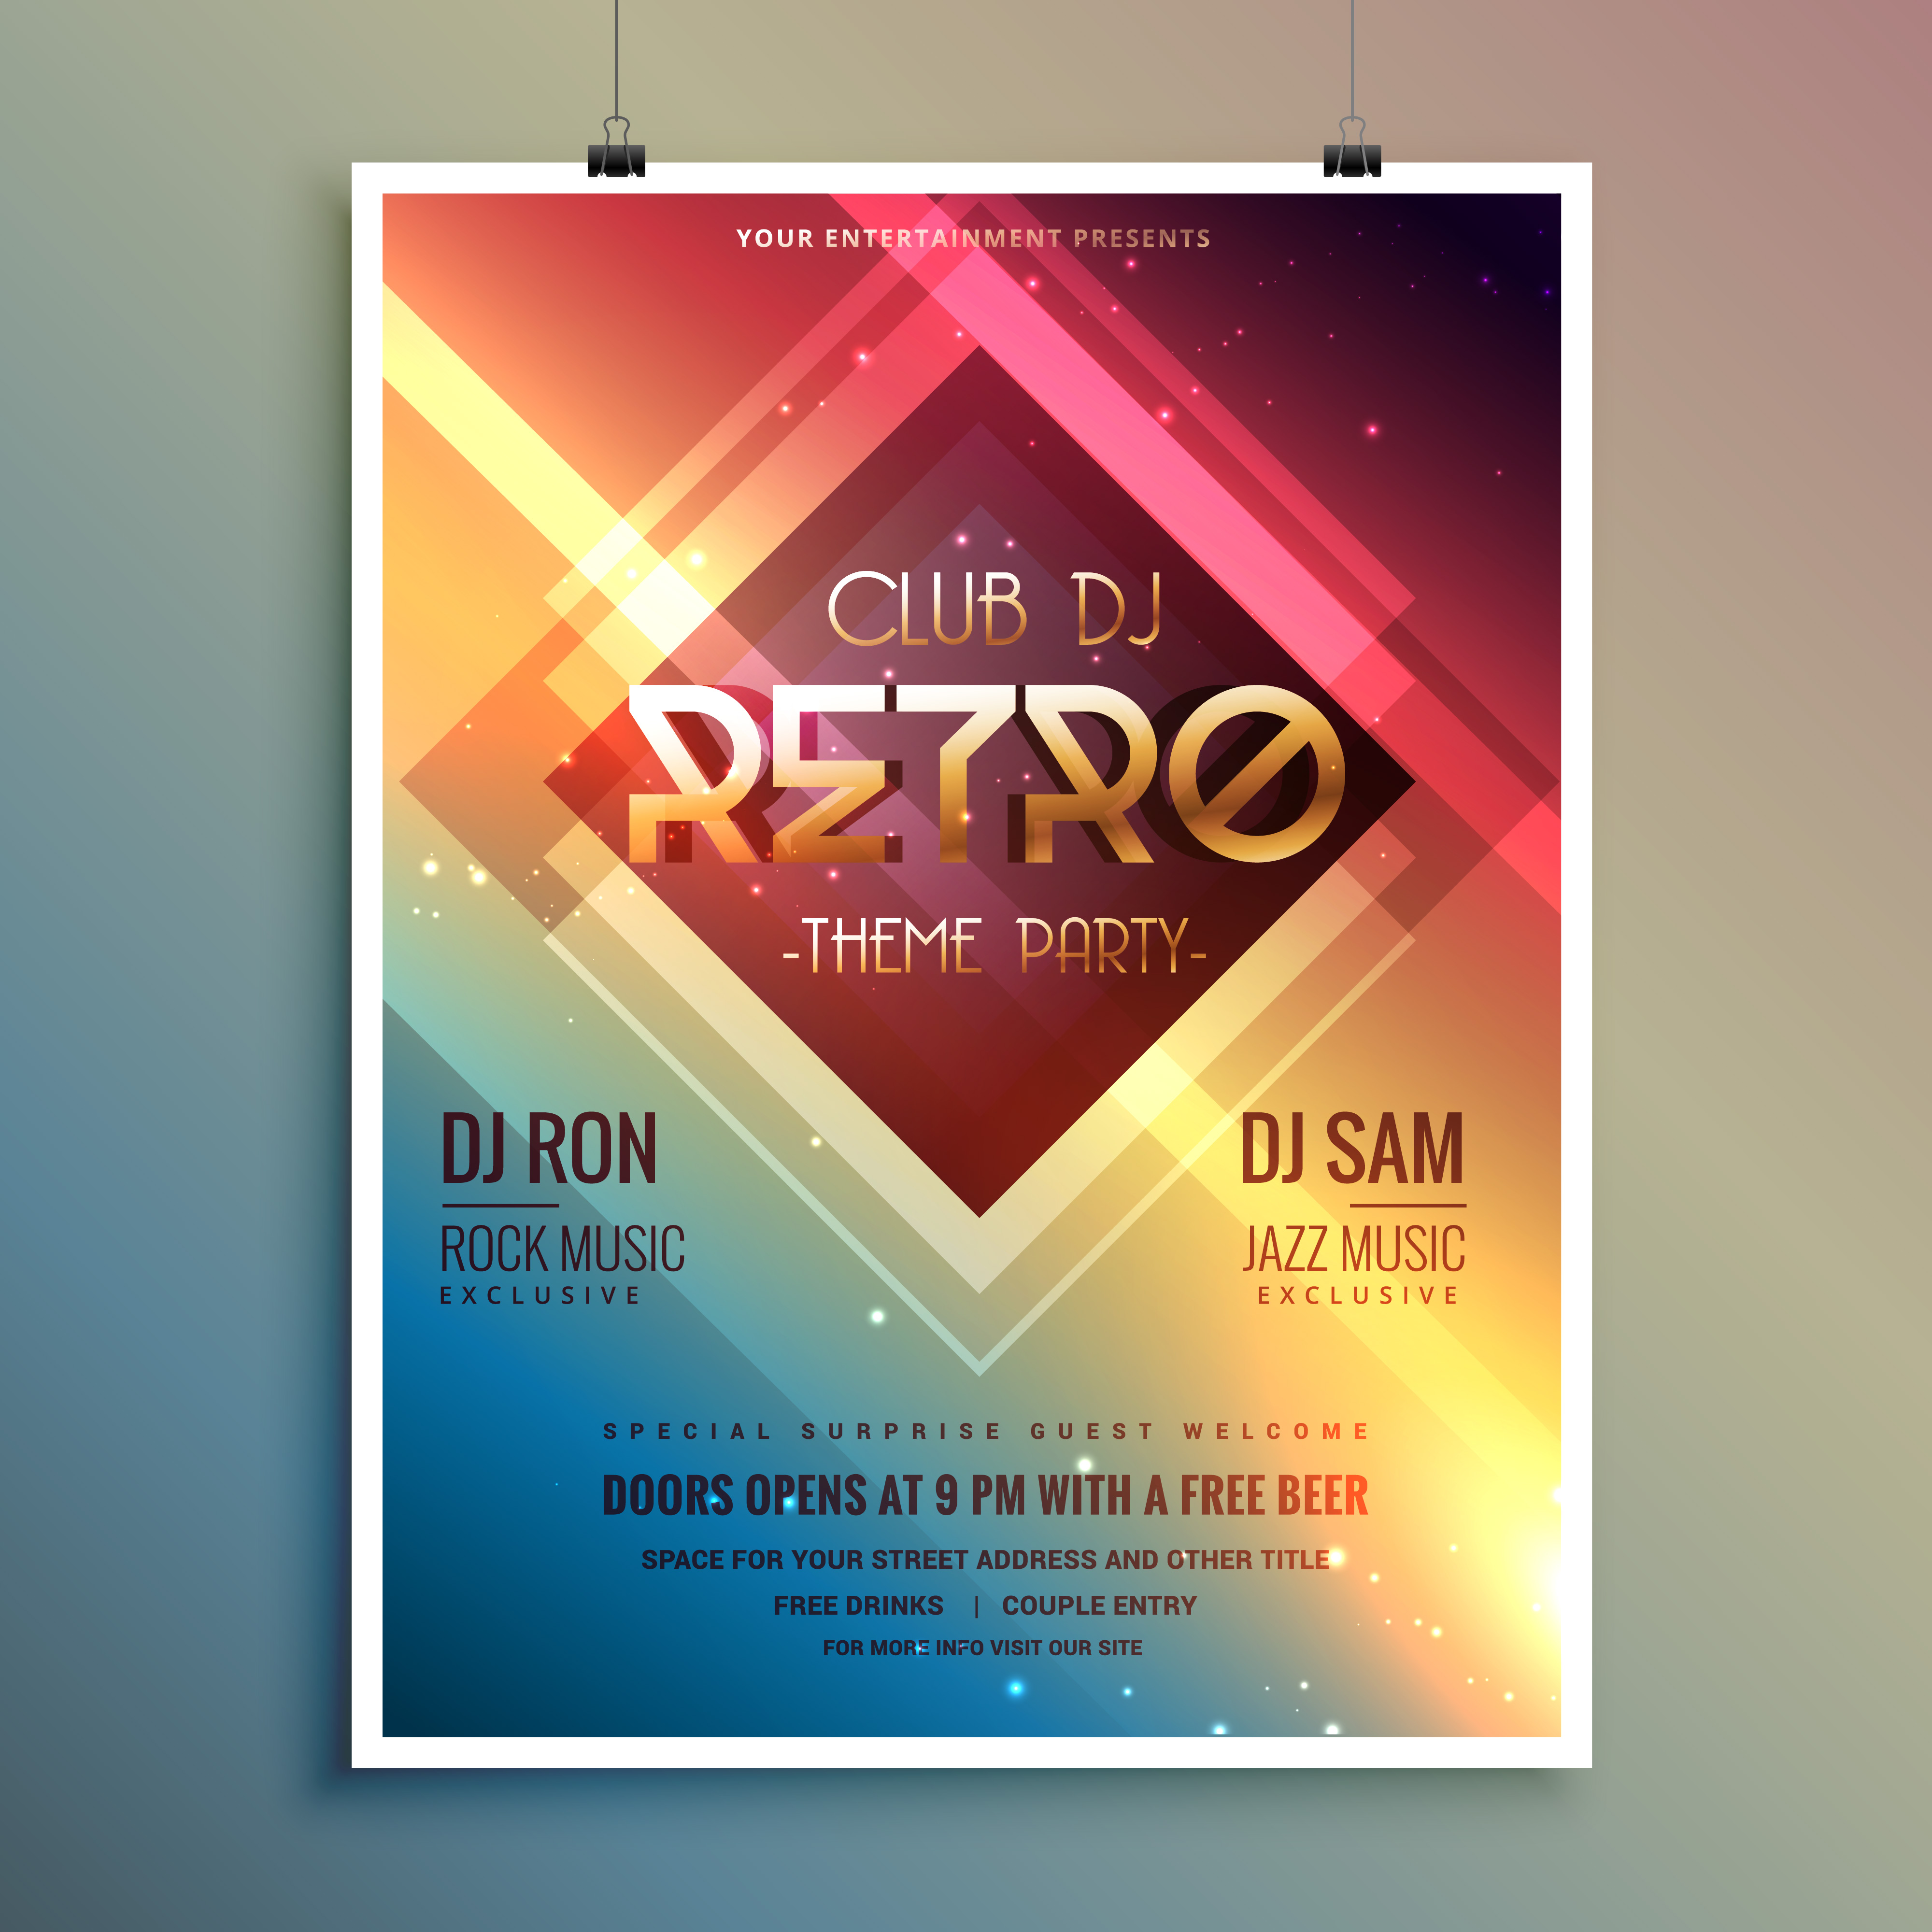 Retro Club Theme Party Flyer Template Download Free Vector Art